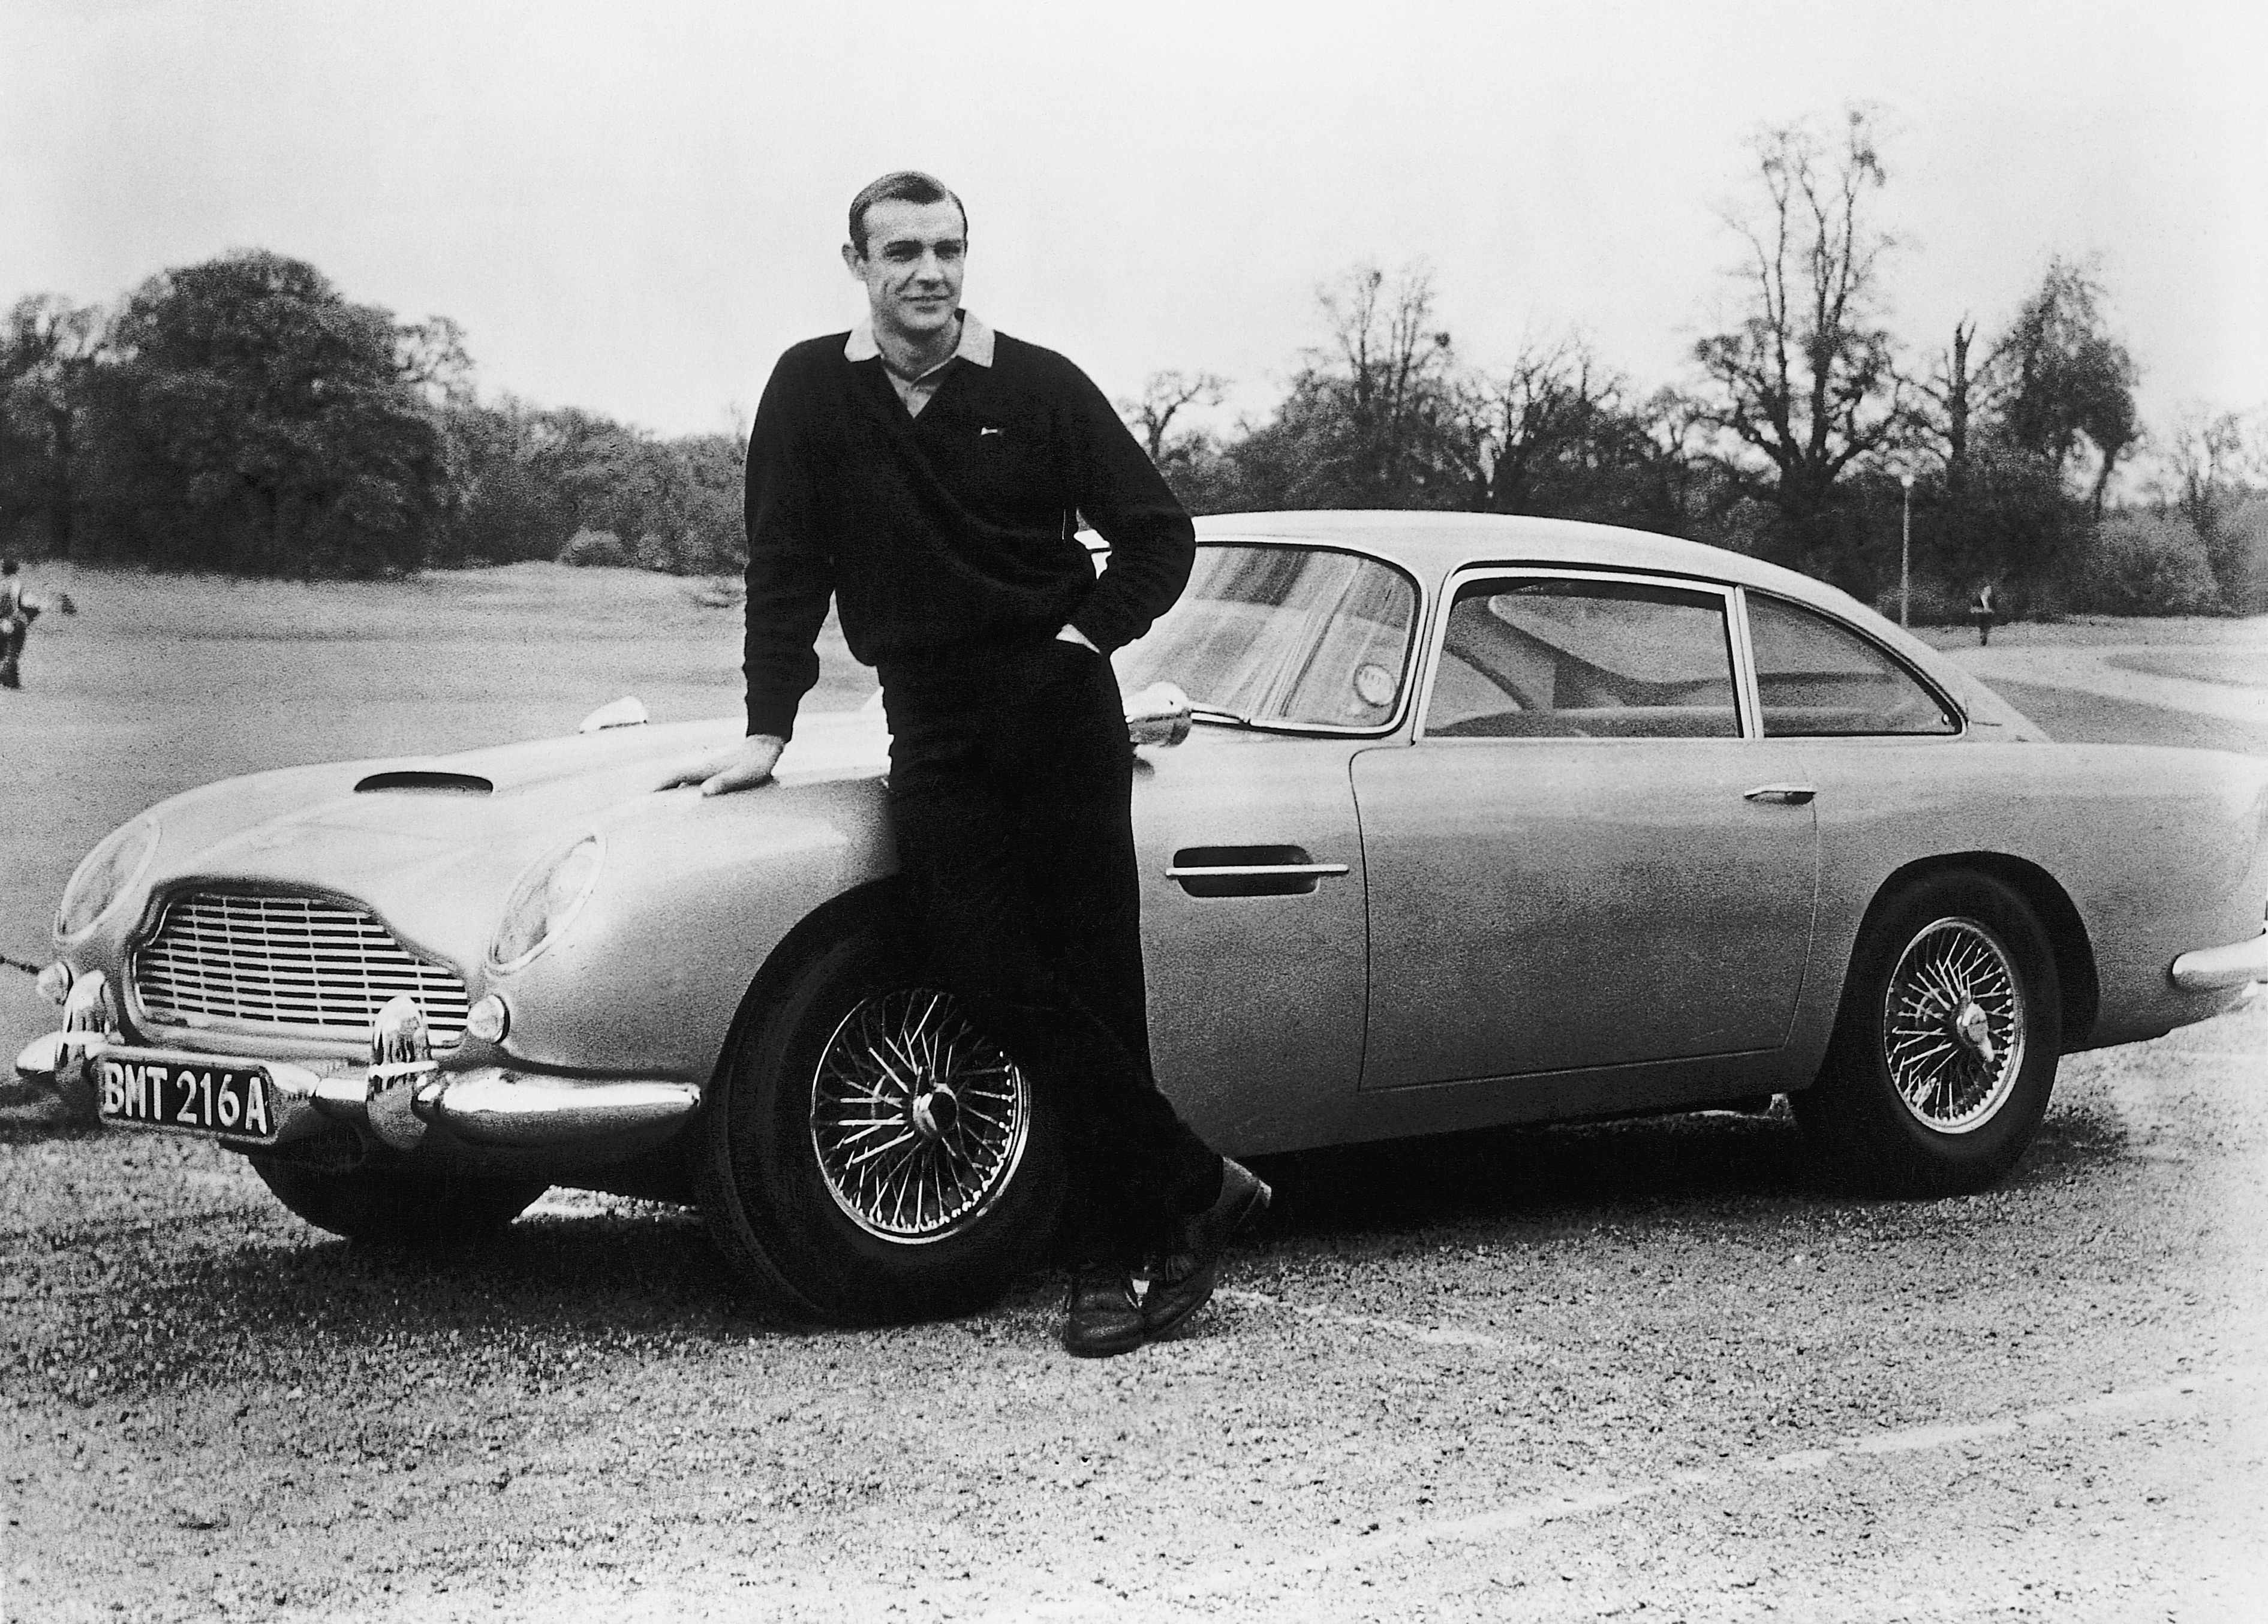 The Greatest James Bond Cars Of All Time: Ranked